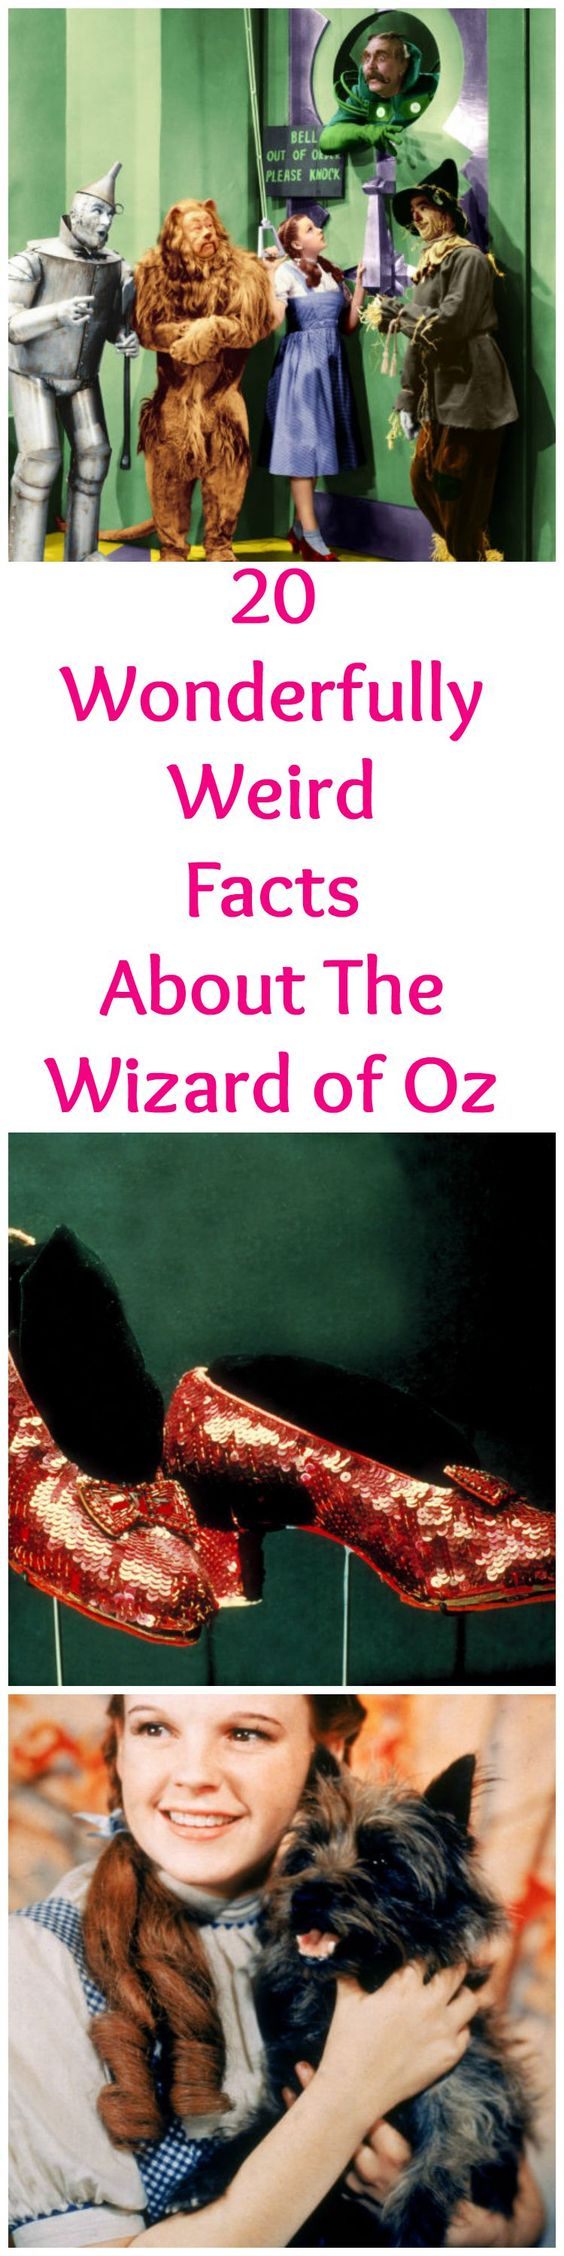 The Ruby Slippers in The Wizard of Oz Were Originally